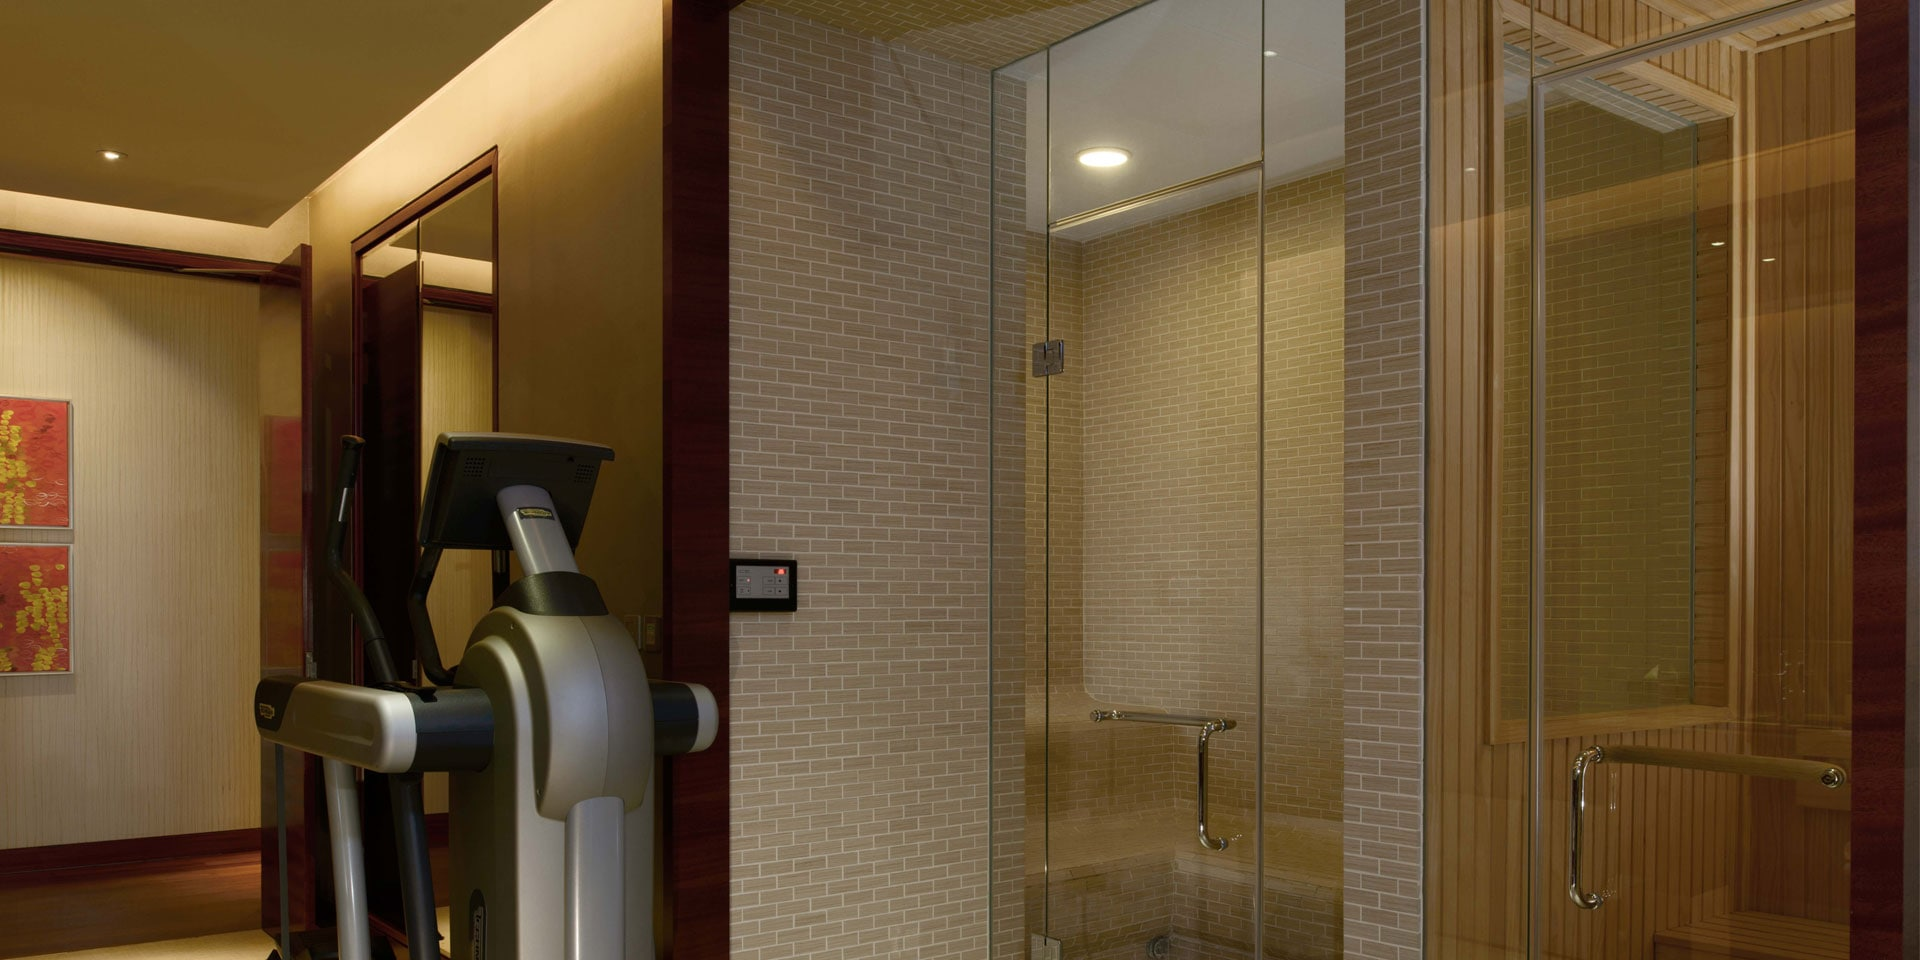 Straits Suite Gym and Sauna Room at Marina Bay Sands